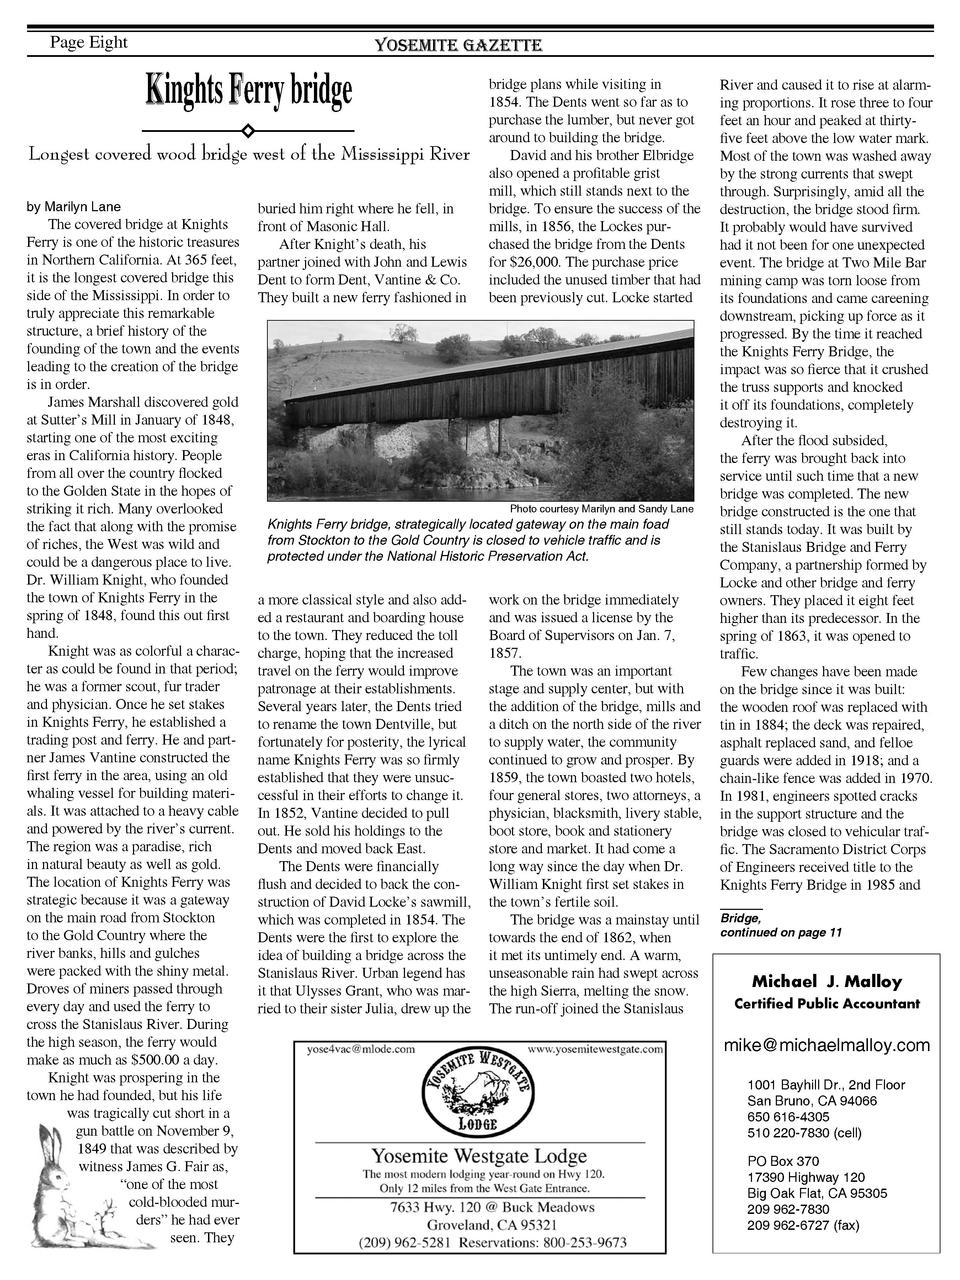 Page Eight  Yosemite Gazette  Kinghts Ferry bridge Longest covered wood bridge west of the Mississippi River by Marilyn La...